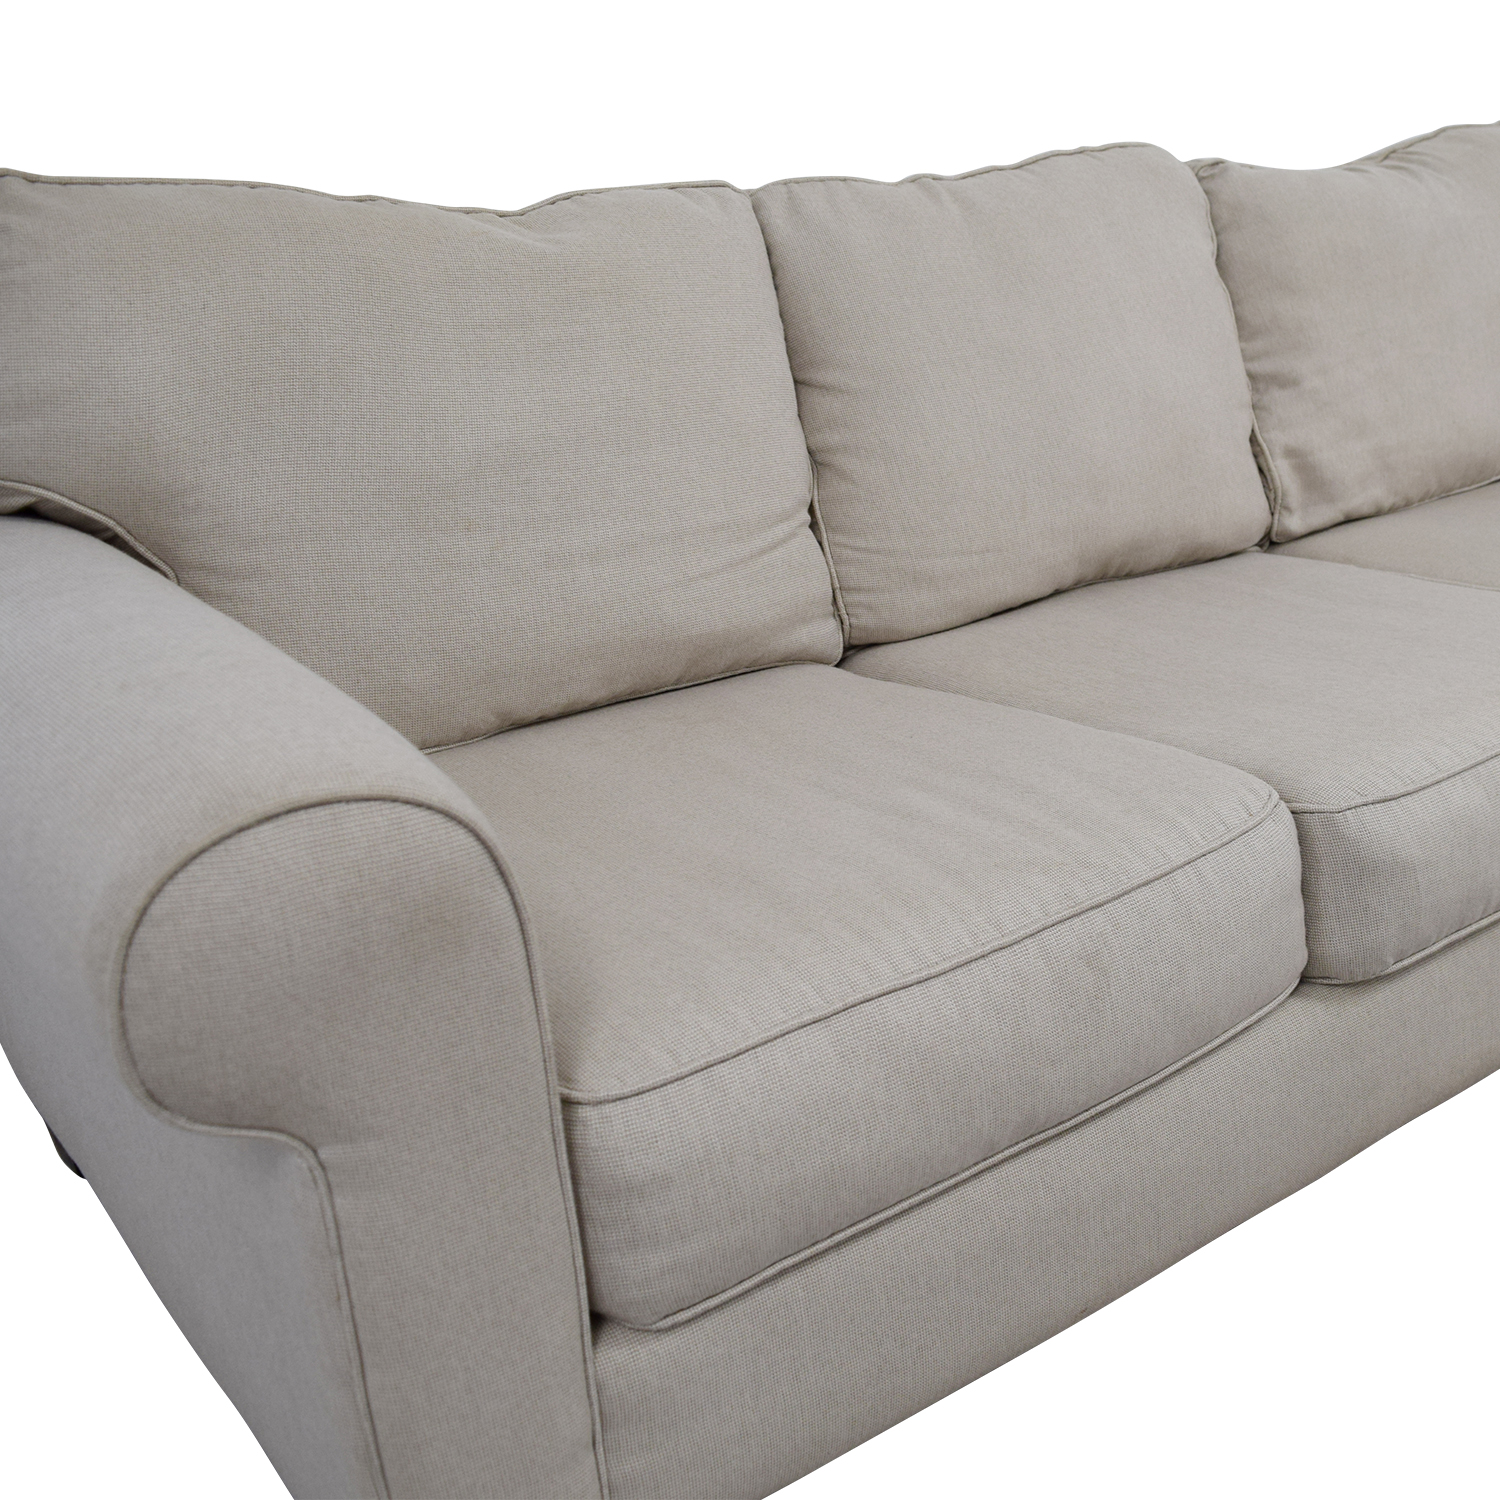 buy Raymour and Flanigan Raymour and Flanigan Langston Tan Couch online